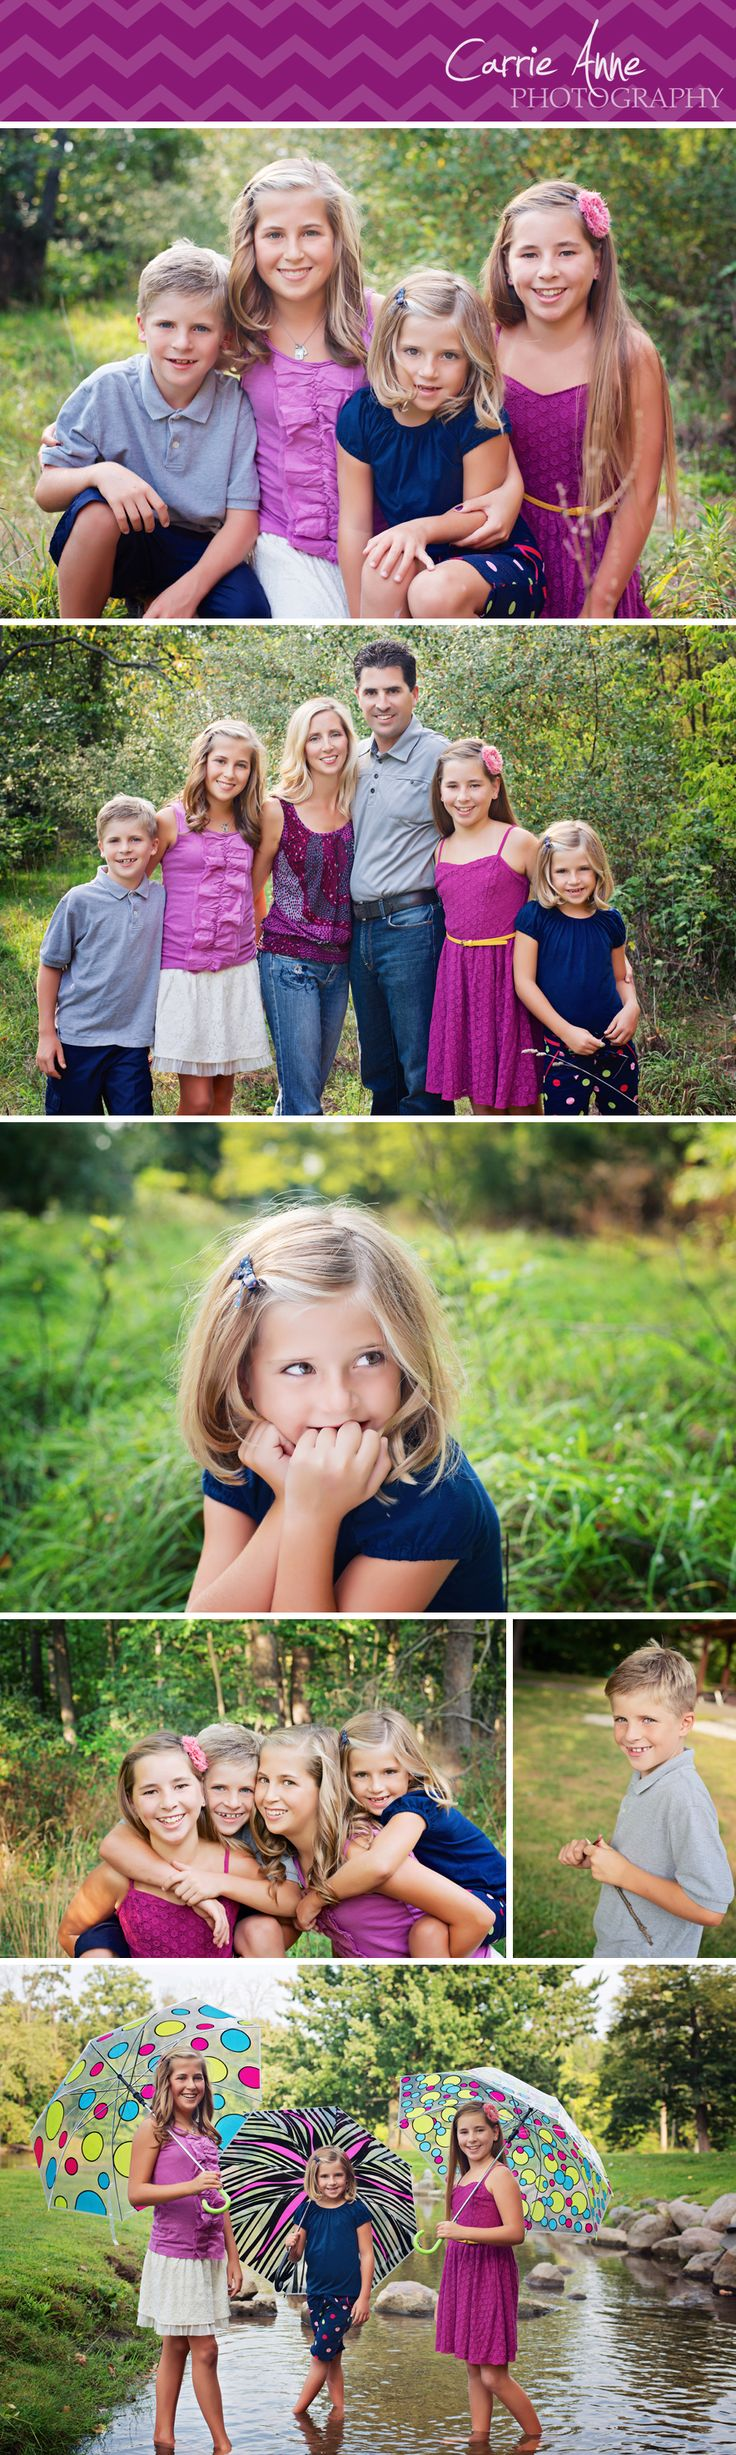 Carrie Anne Photography-family summer session